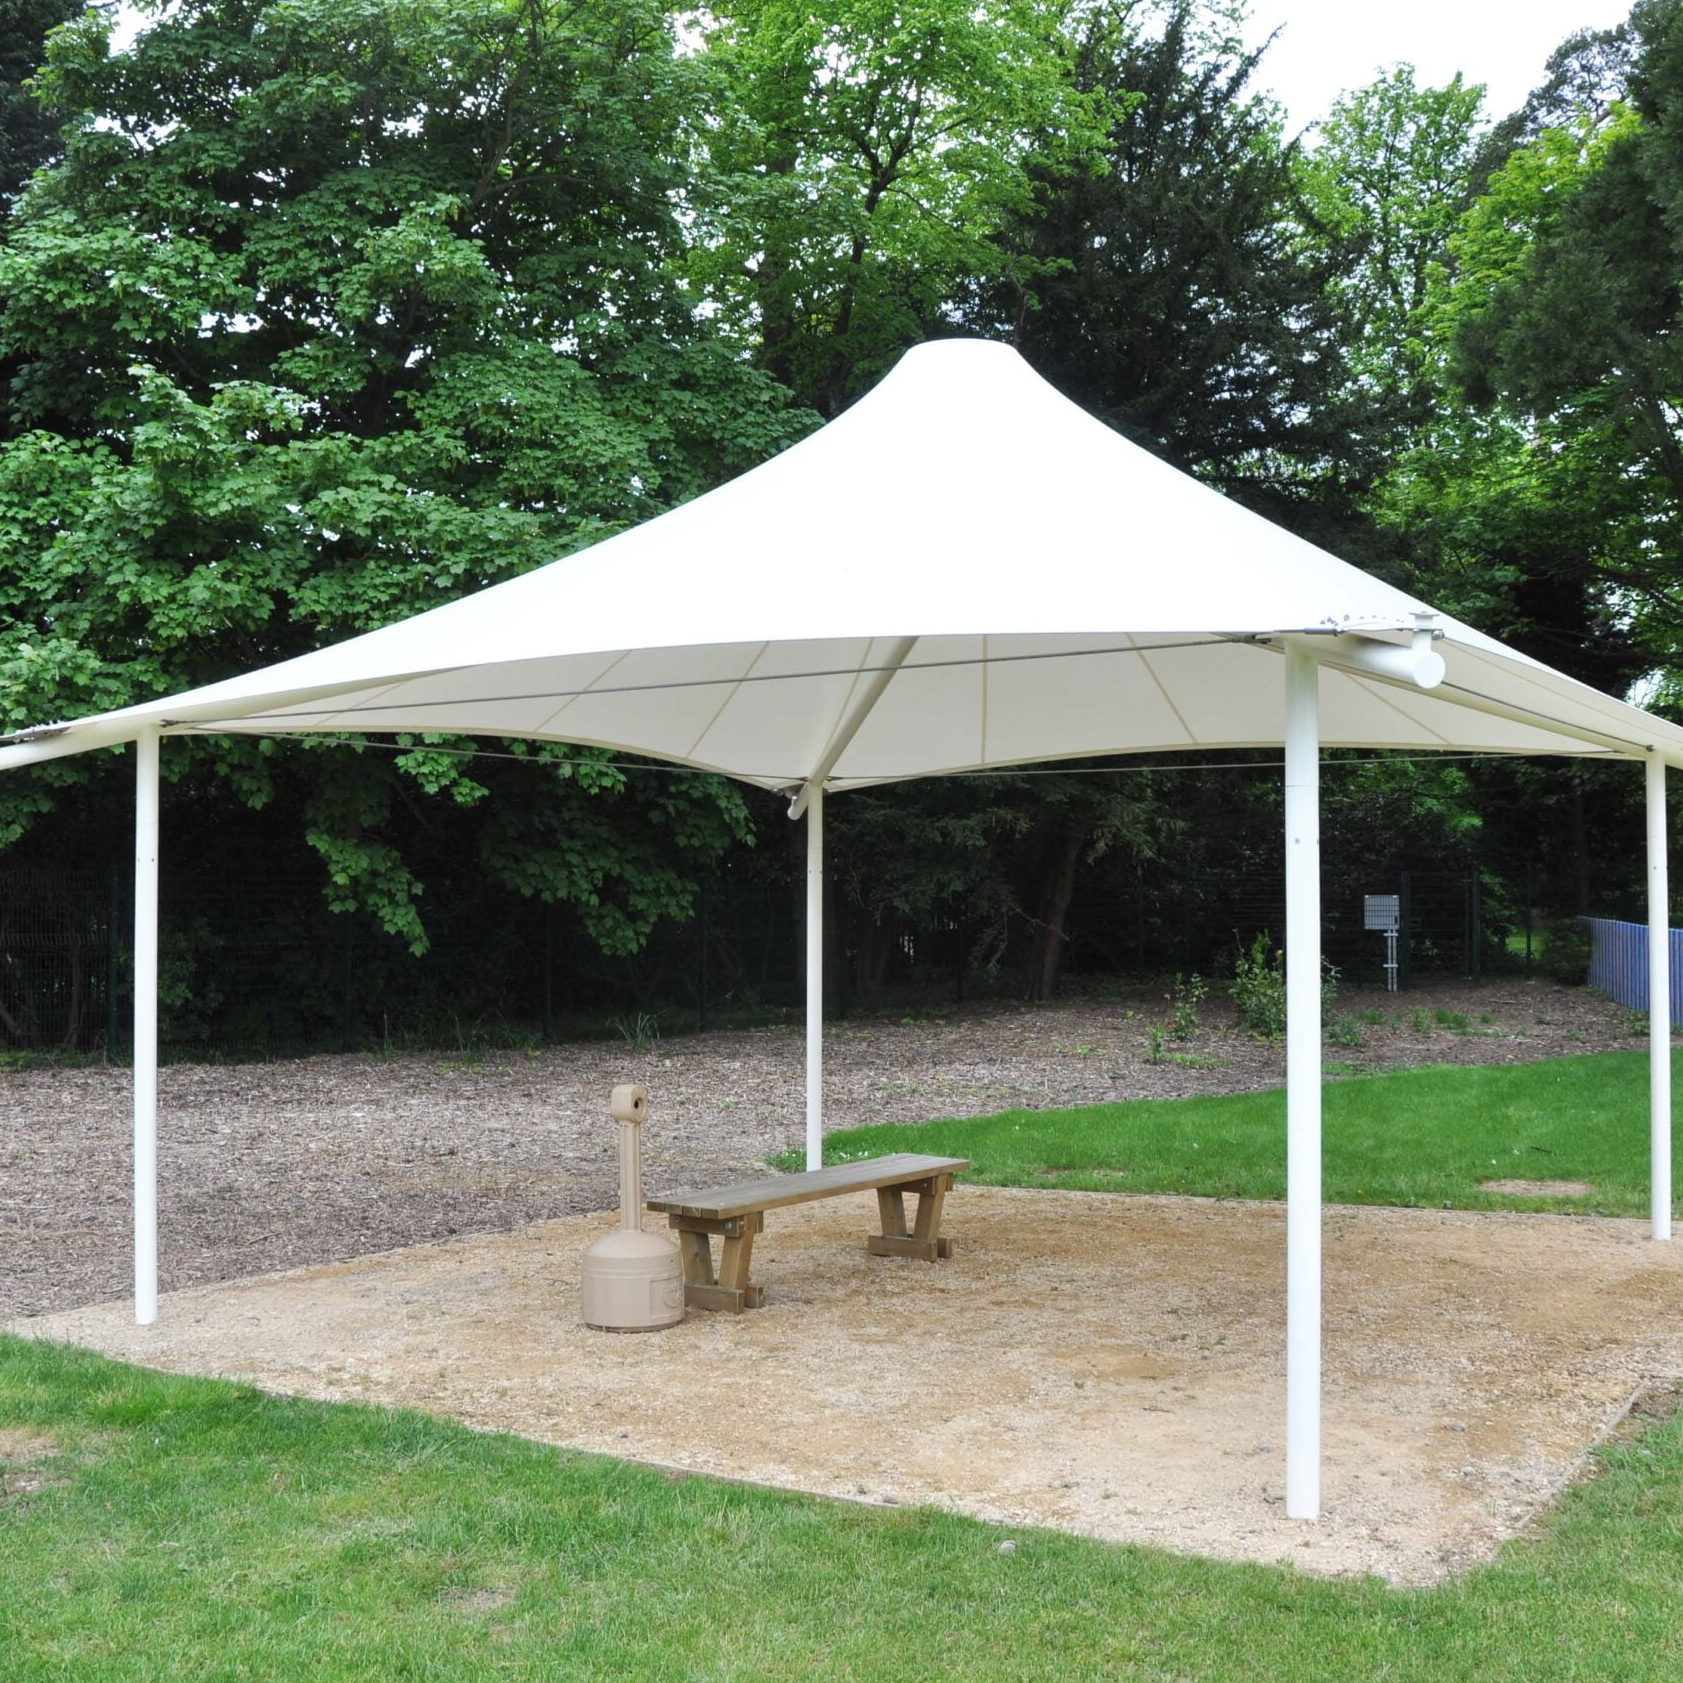 Fontwell Tensile Fabric Conic Canopy